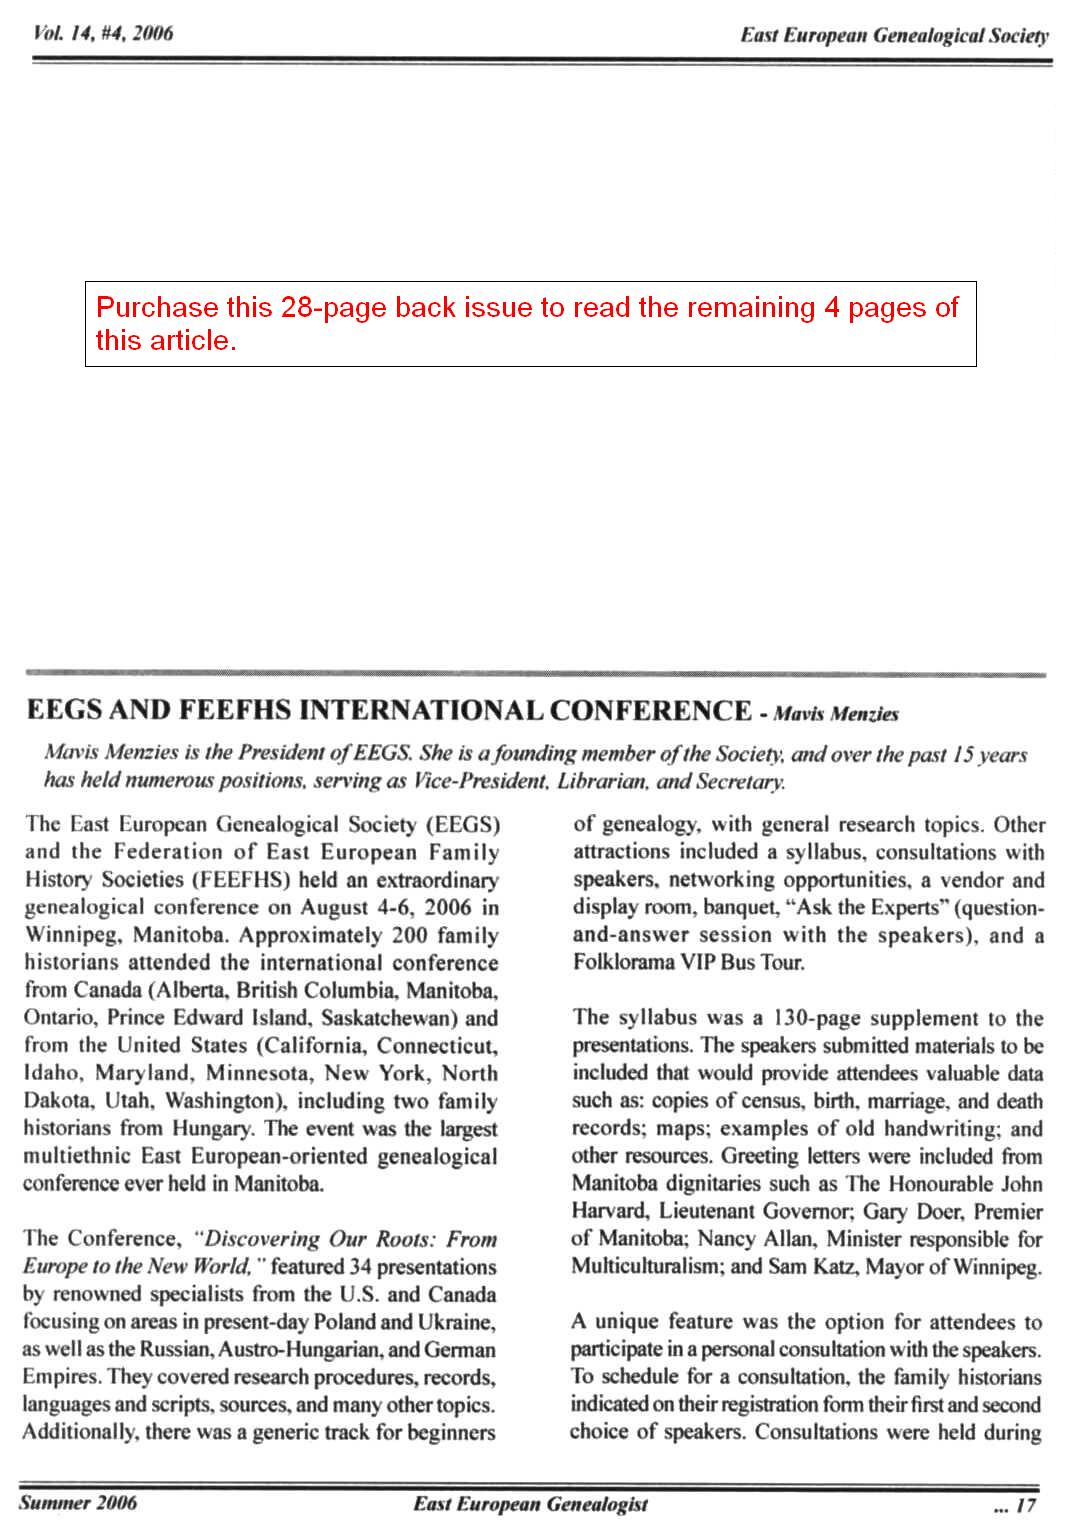 Topic Preview: EEGS and FEEFHS International Conference